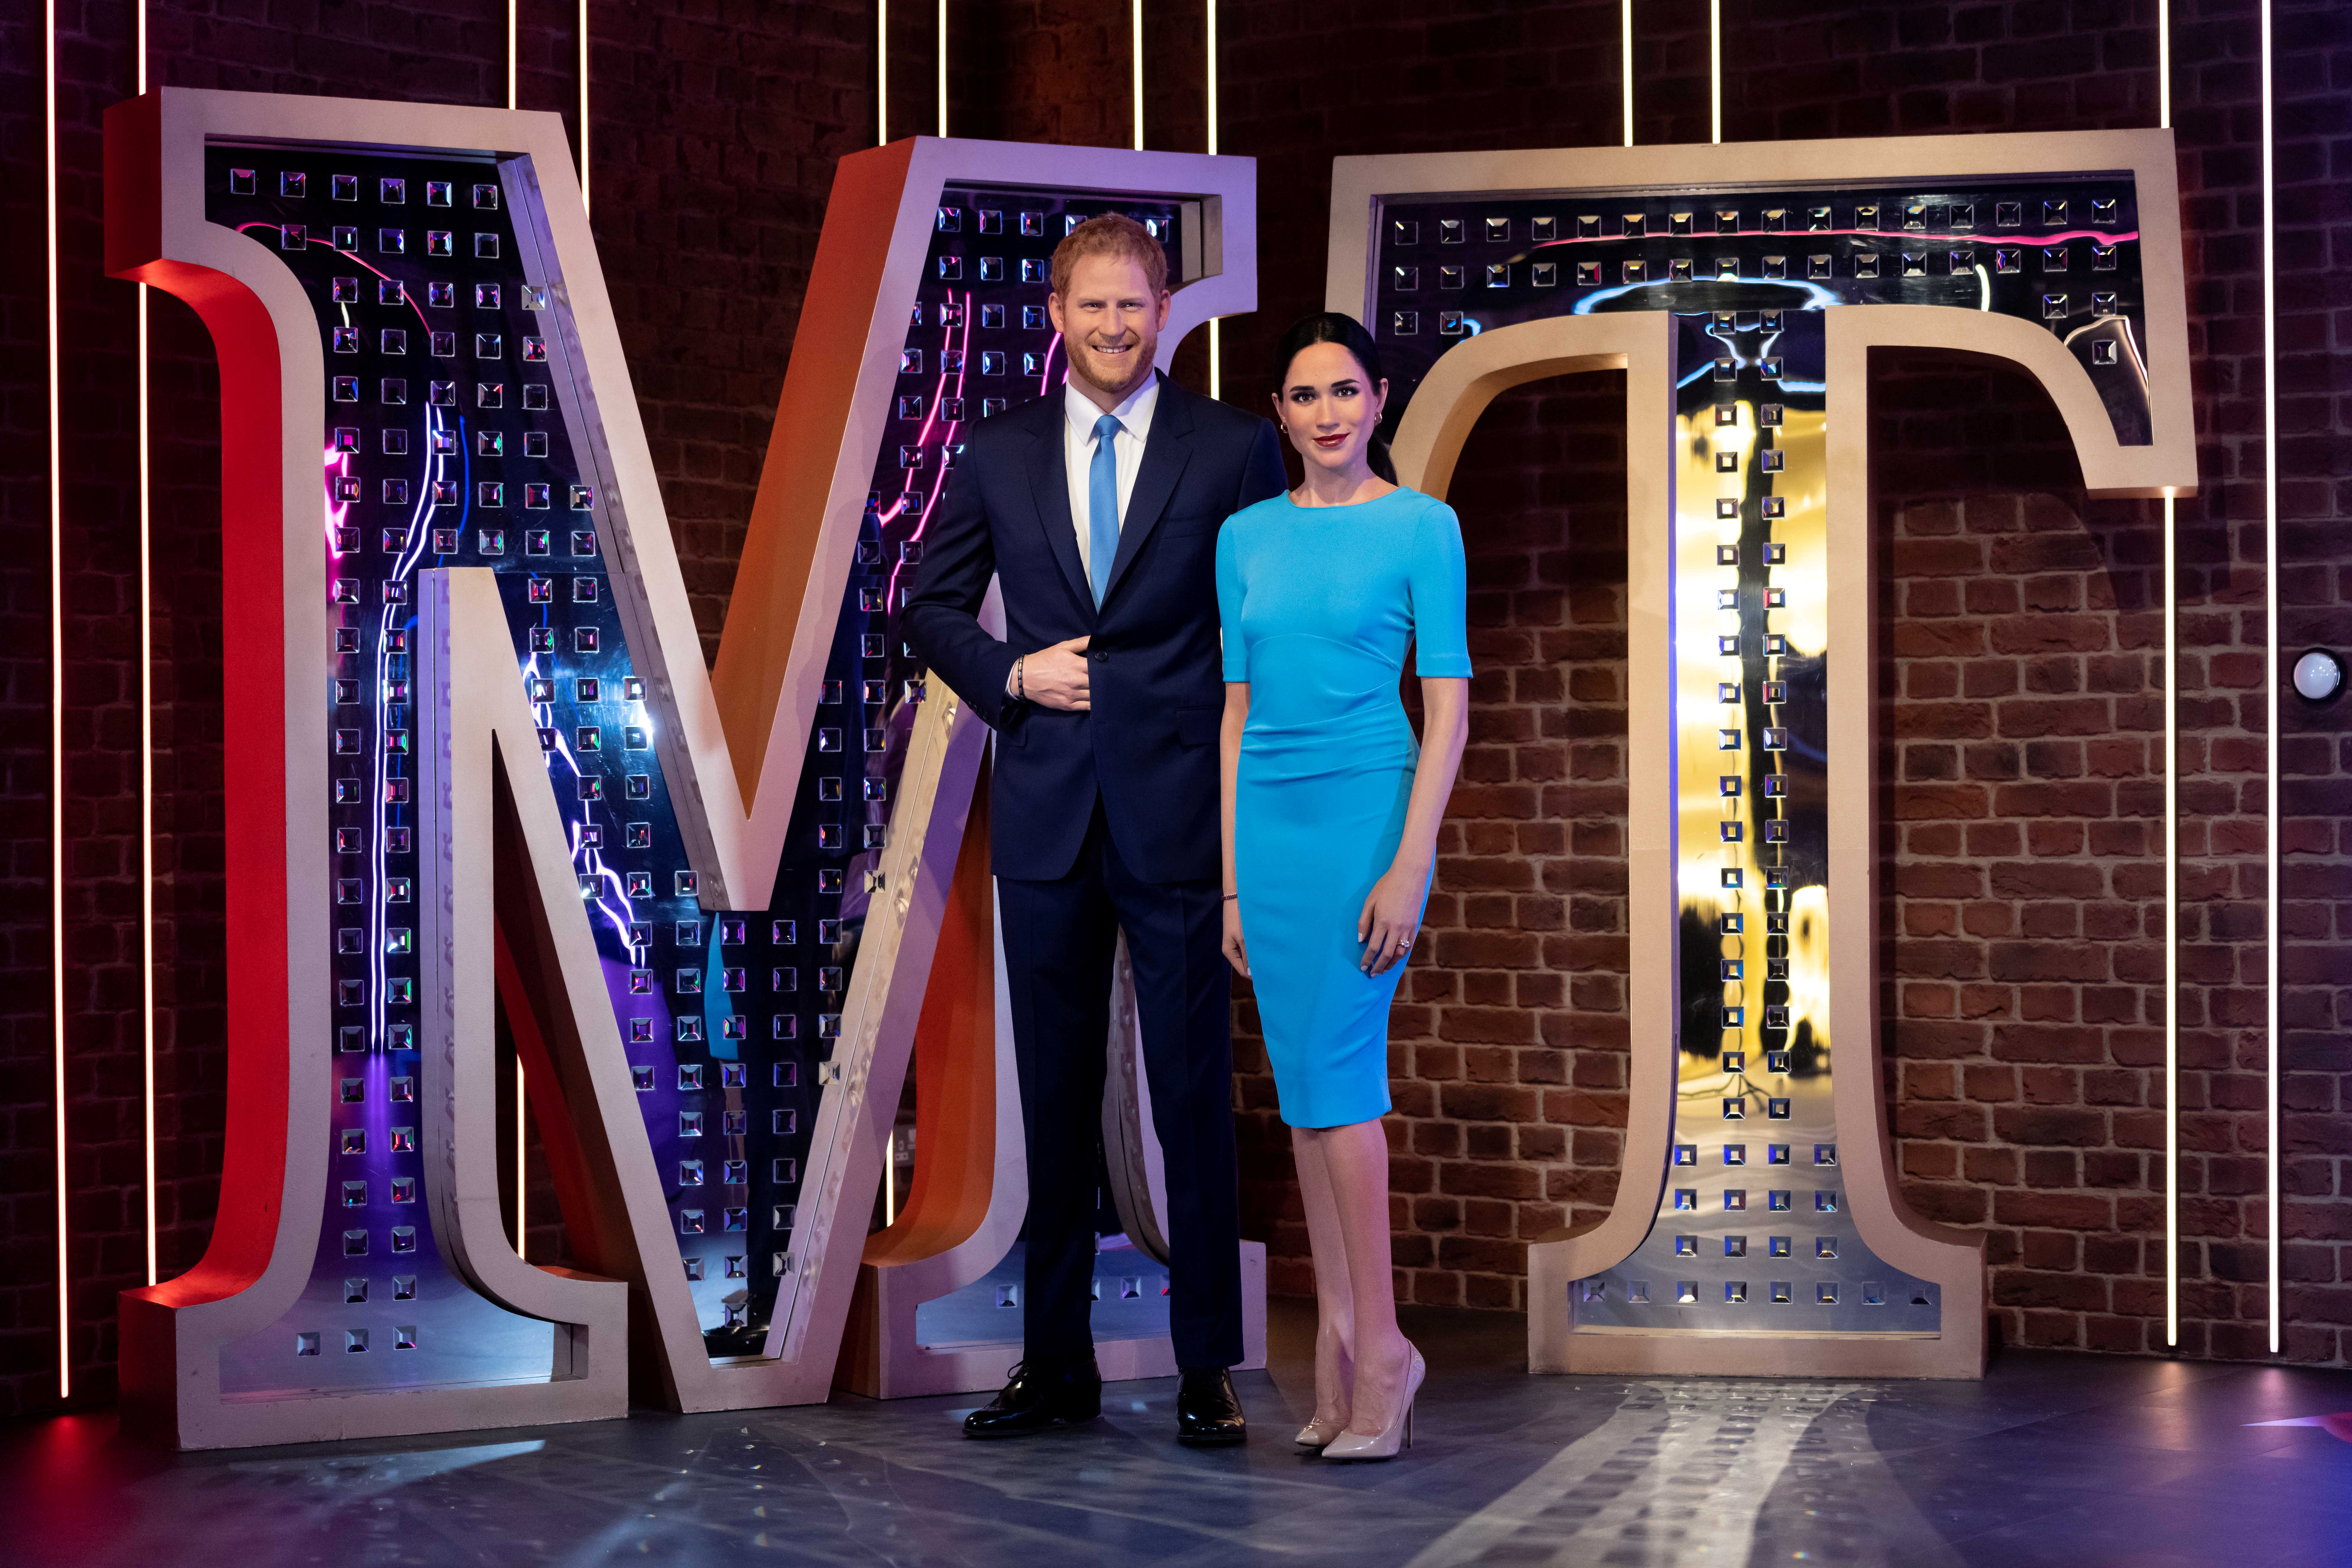 Figures of Madame Tussauds London's Britain's Prince Harry and Meghan, Duchess of Sussex, stand in their new position in London, Britain May 12, 2021.  Madame Tussauds London/Handout via REUTERS